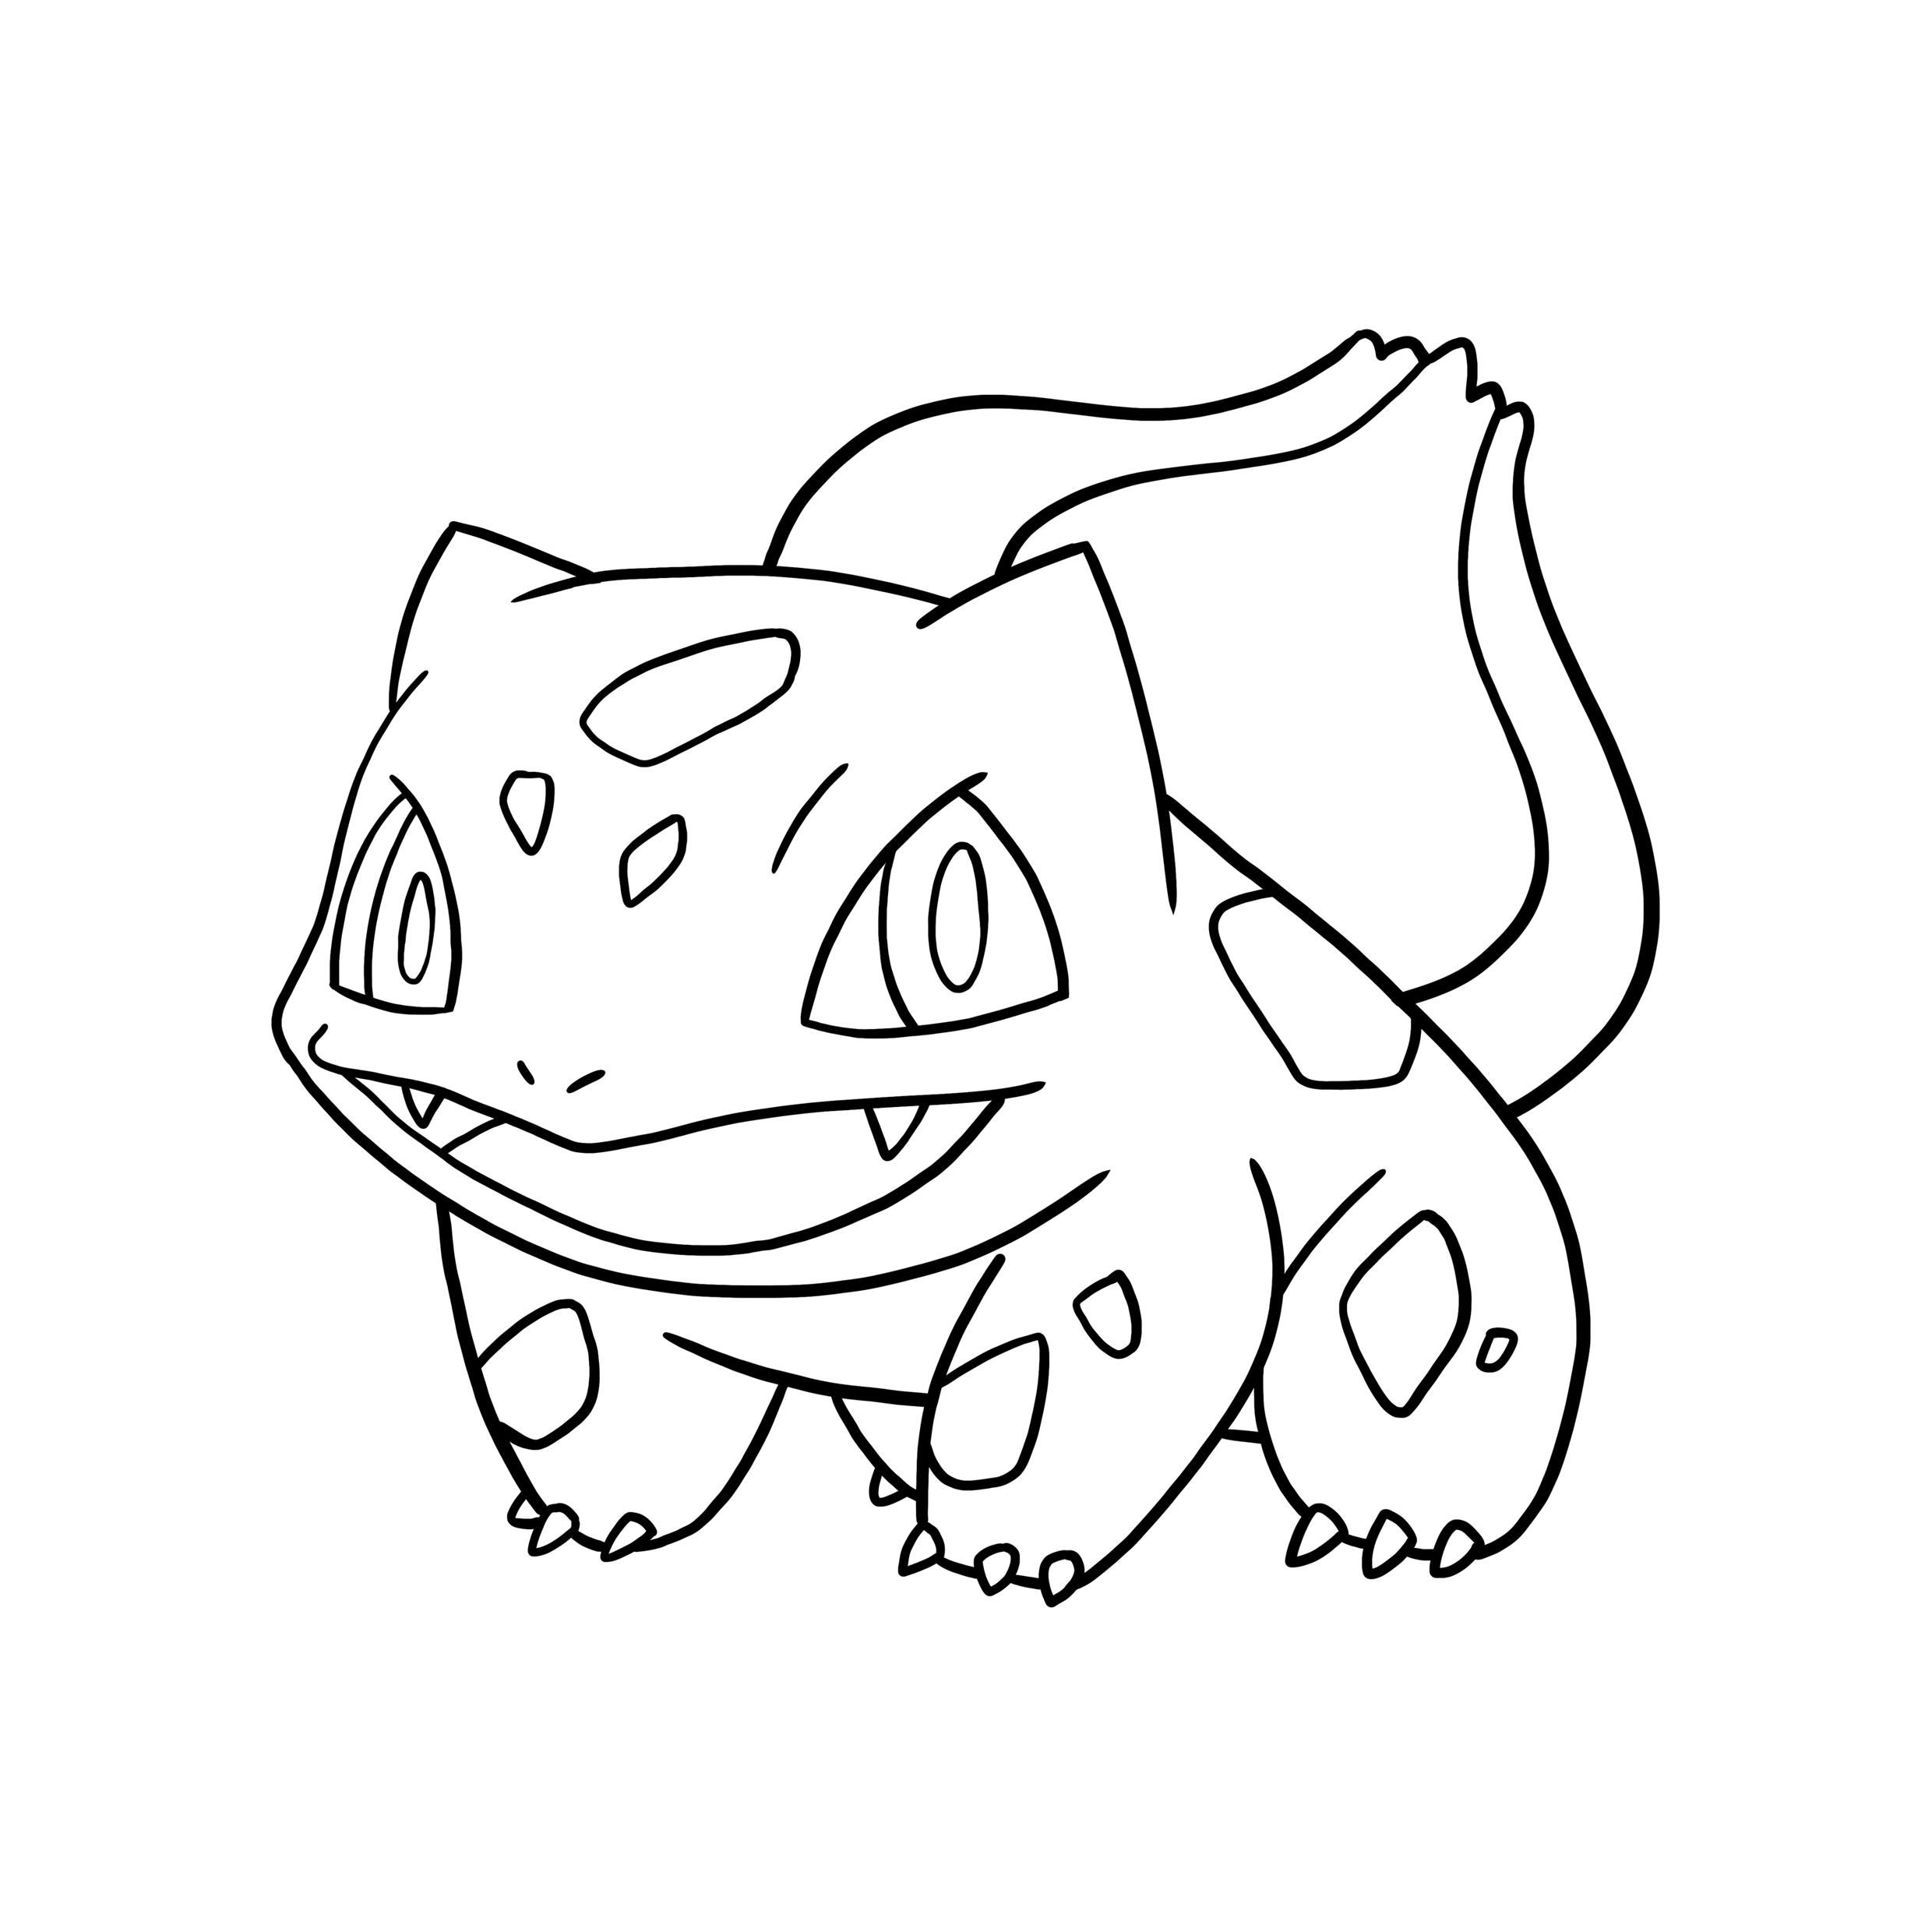 Kleurplaat Bulbasaur Ivysaur Venusaur Gallery Of